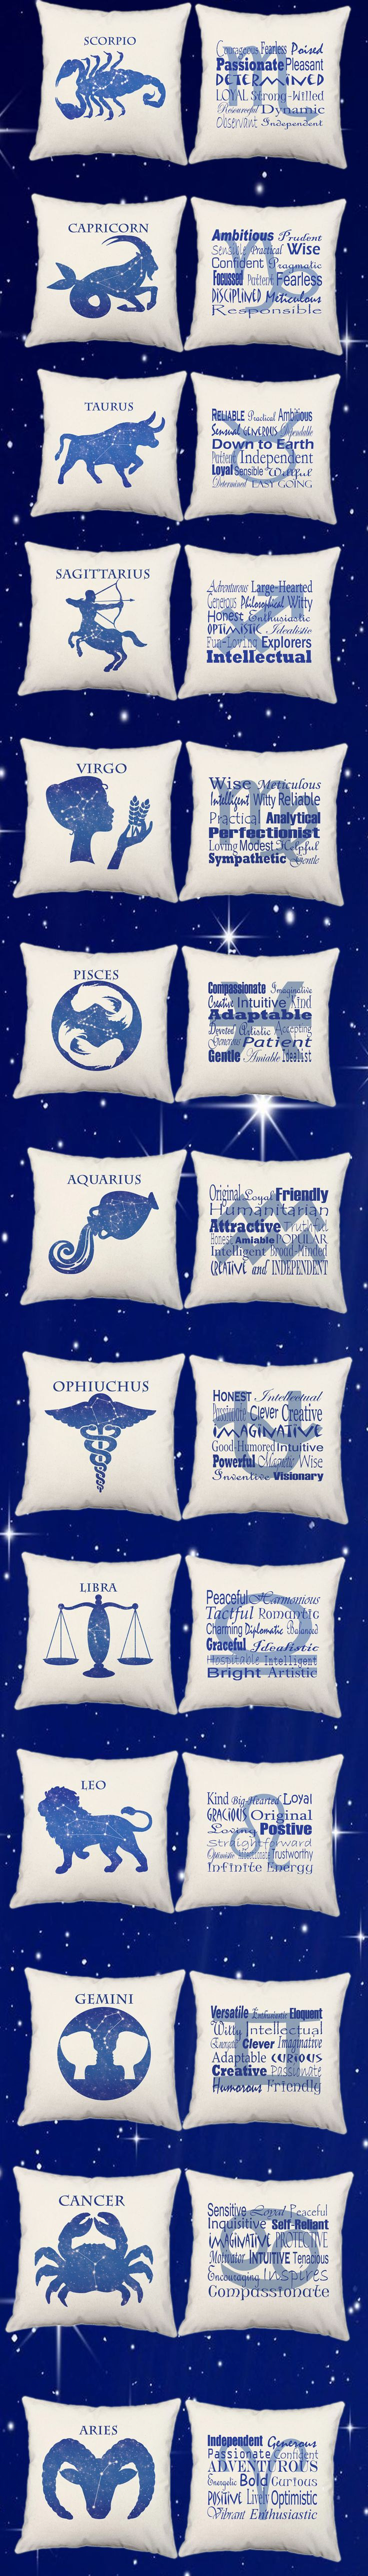 Perfect personalized gift! Zodiac signs for any birthday, great for customizable gifts that are sure to please!